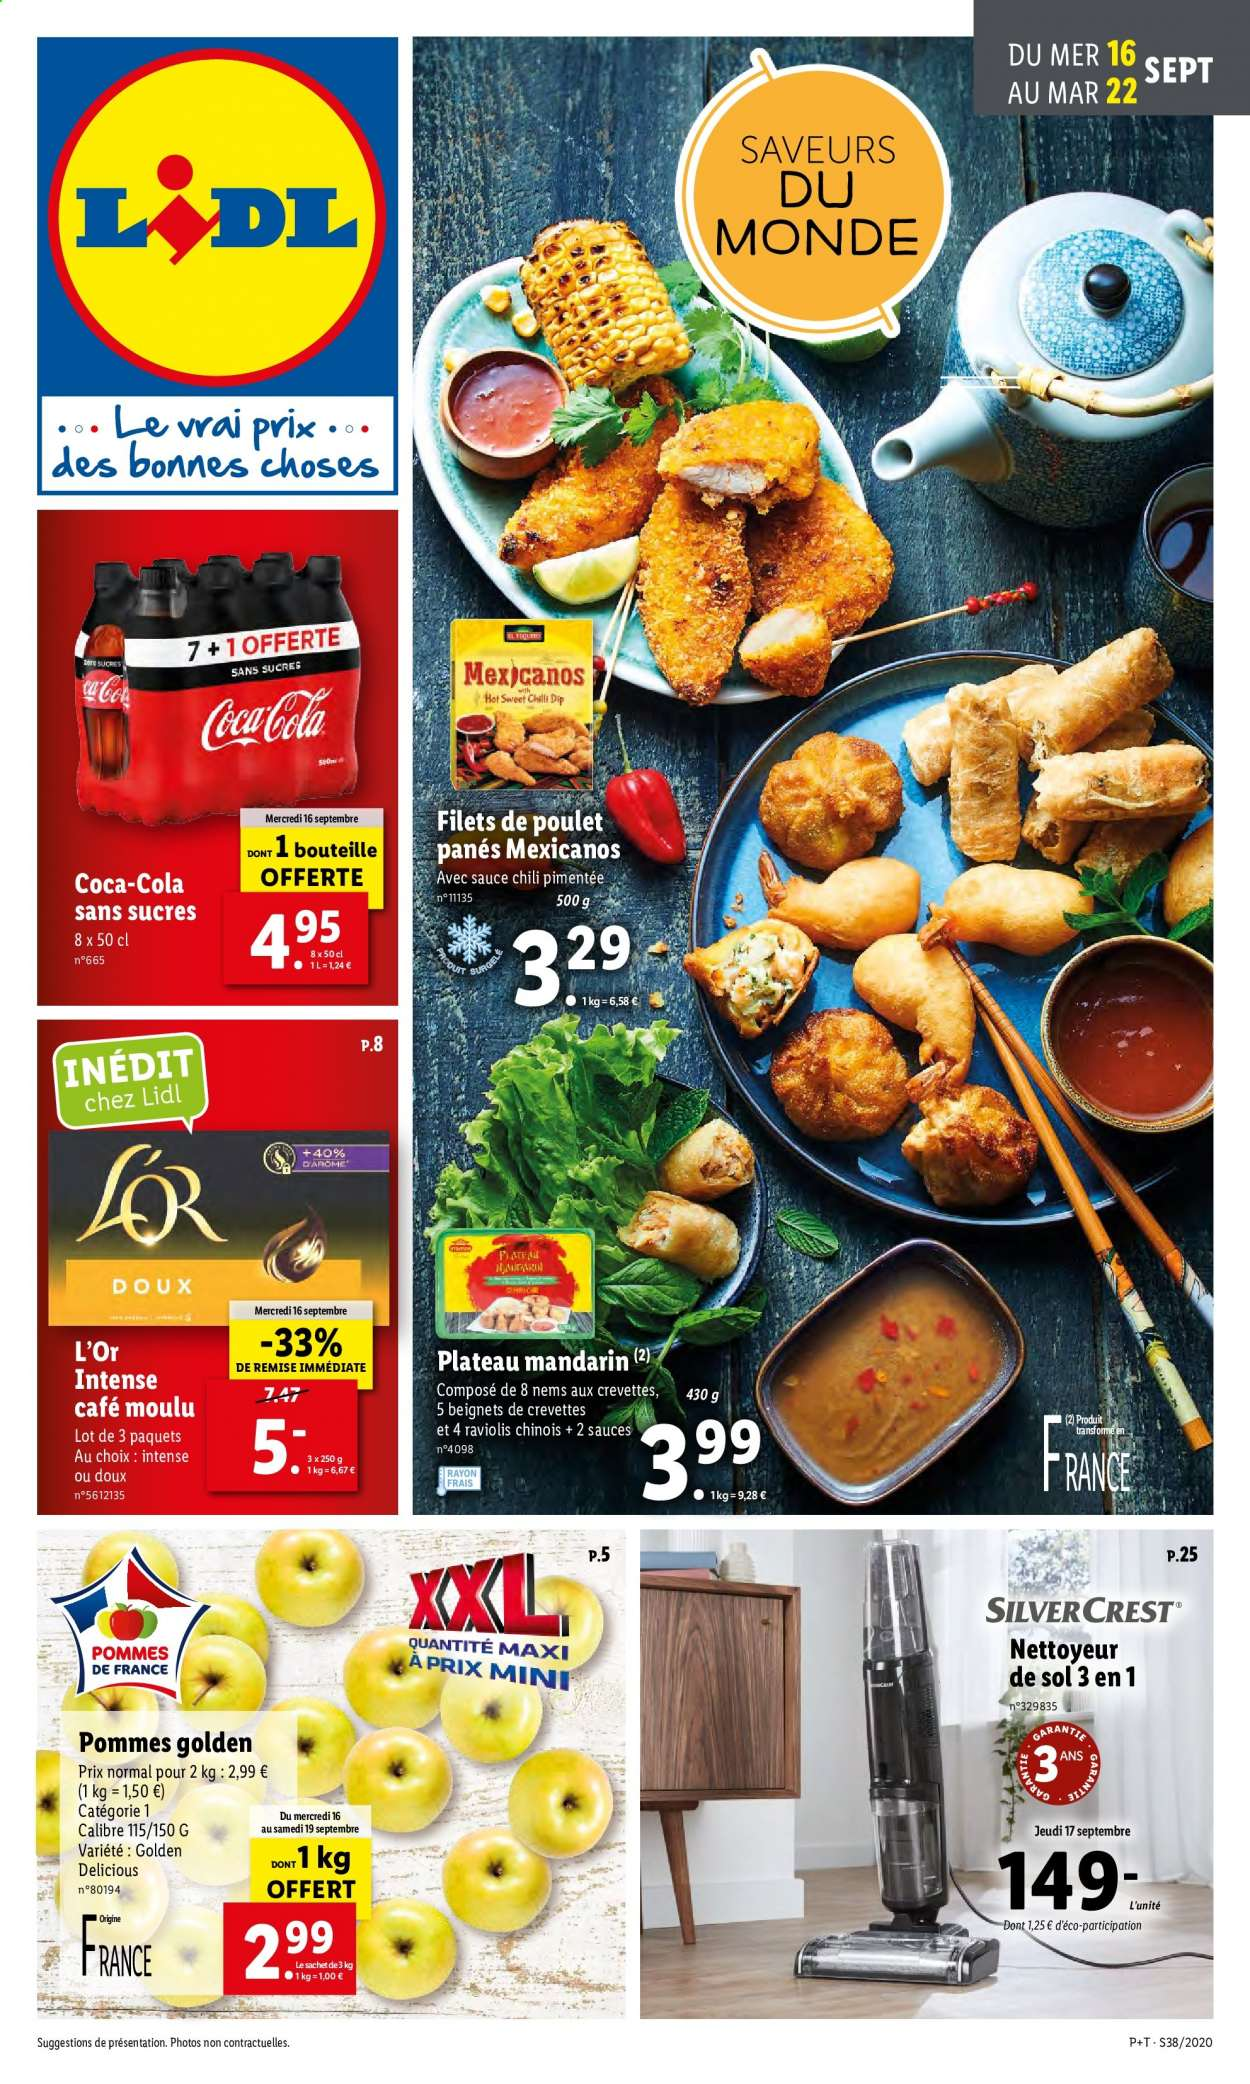 Catalogue Lidl - 16.09.2020 - 22.09.2020. Page 1.